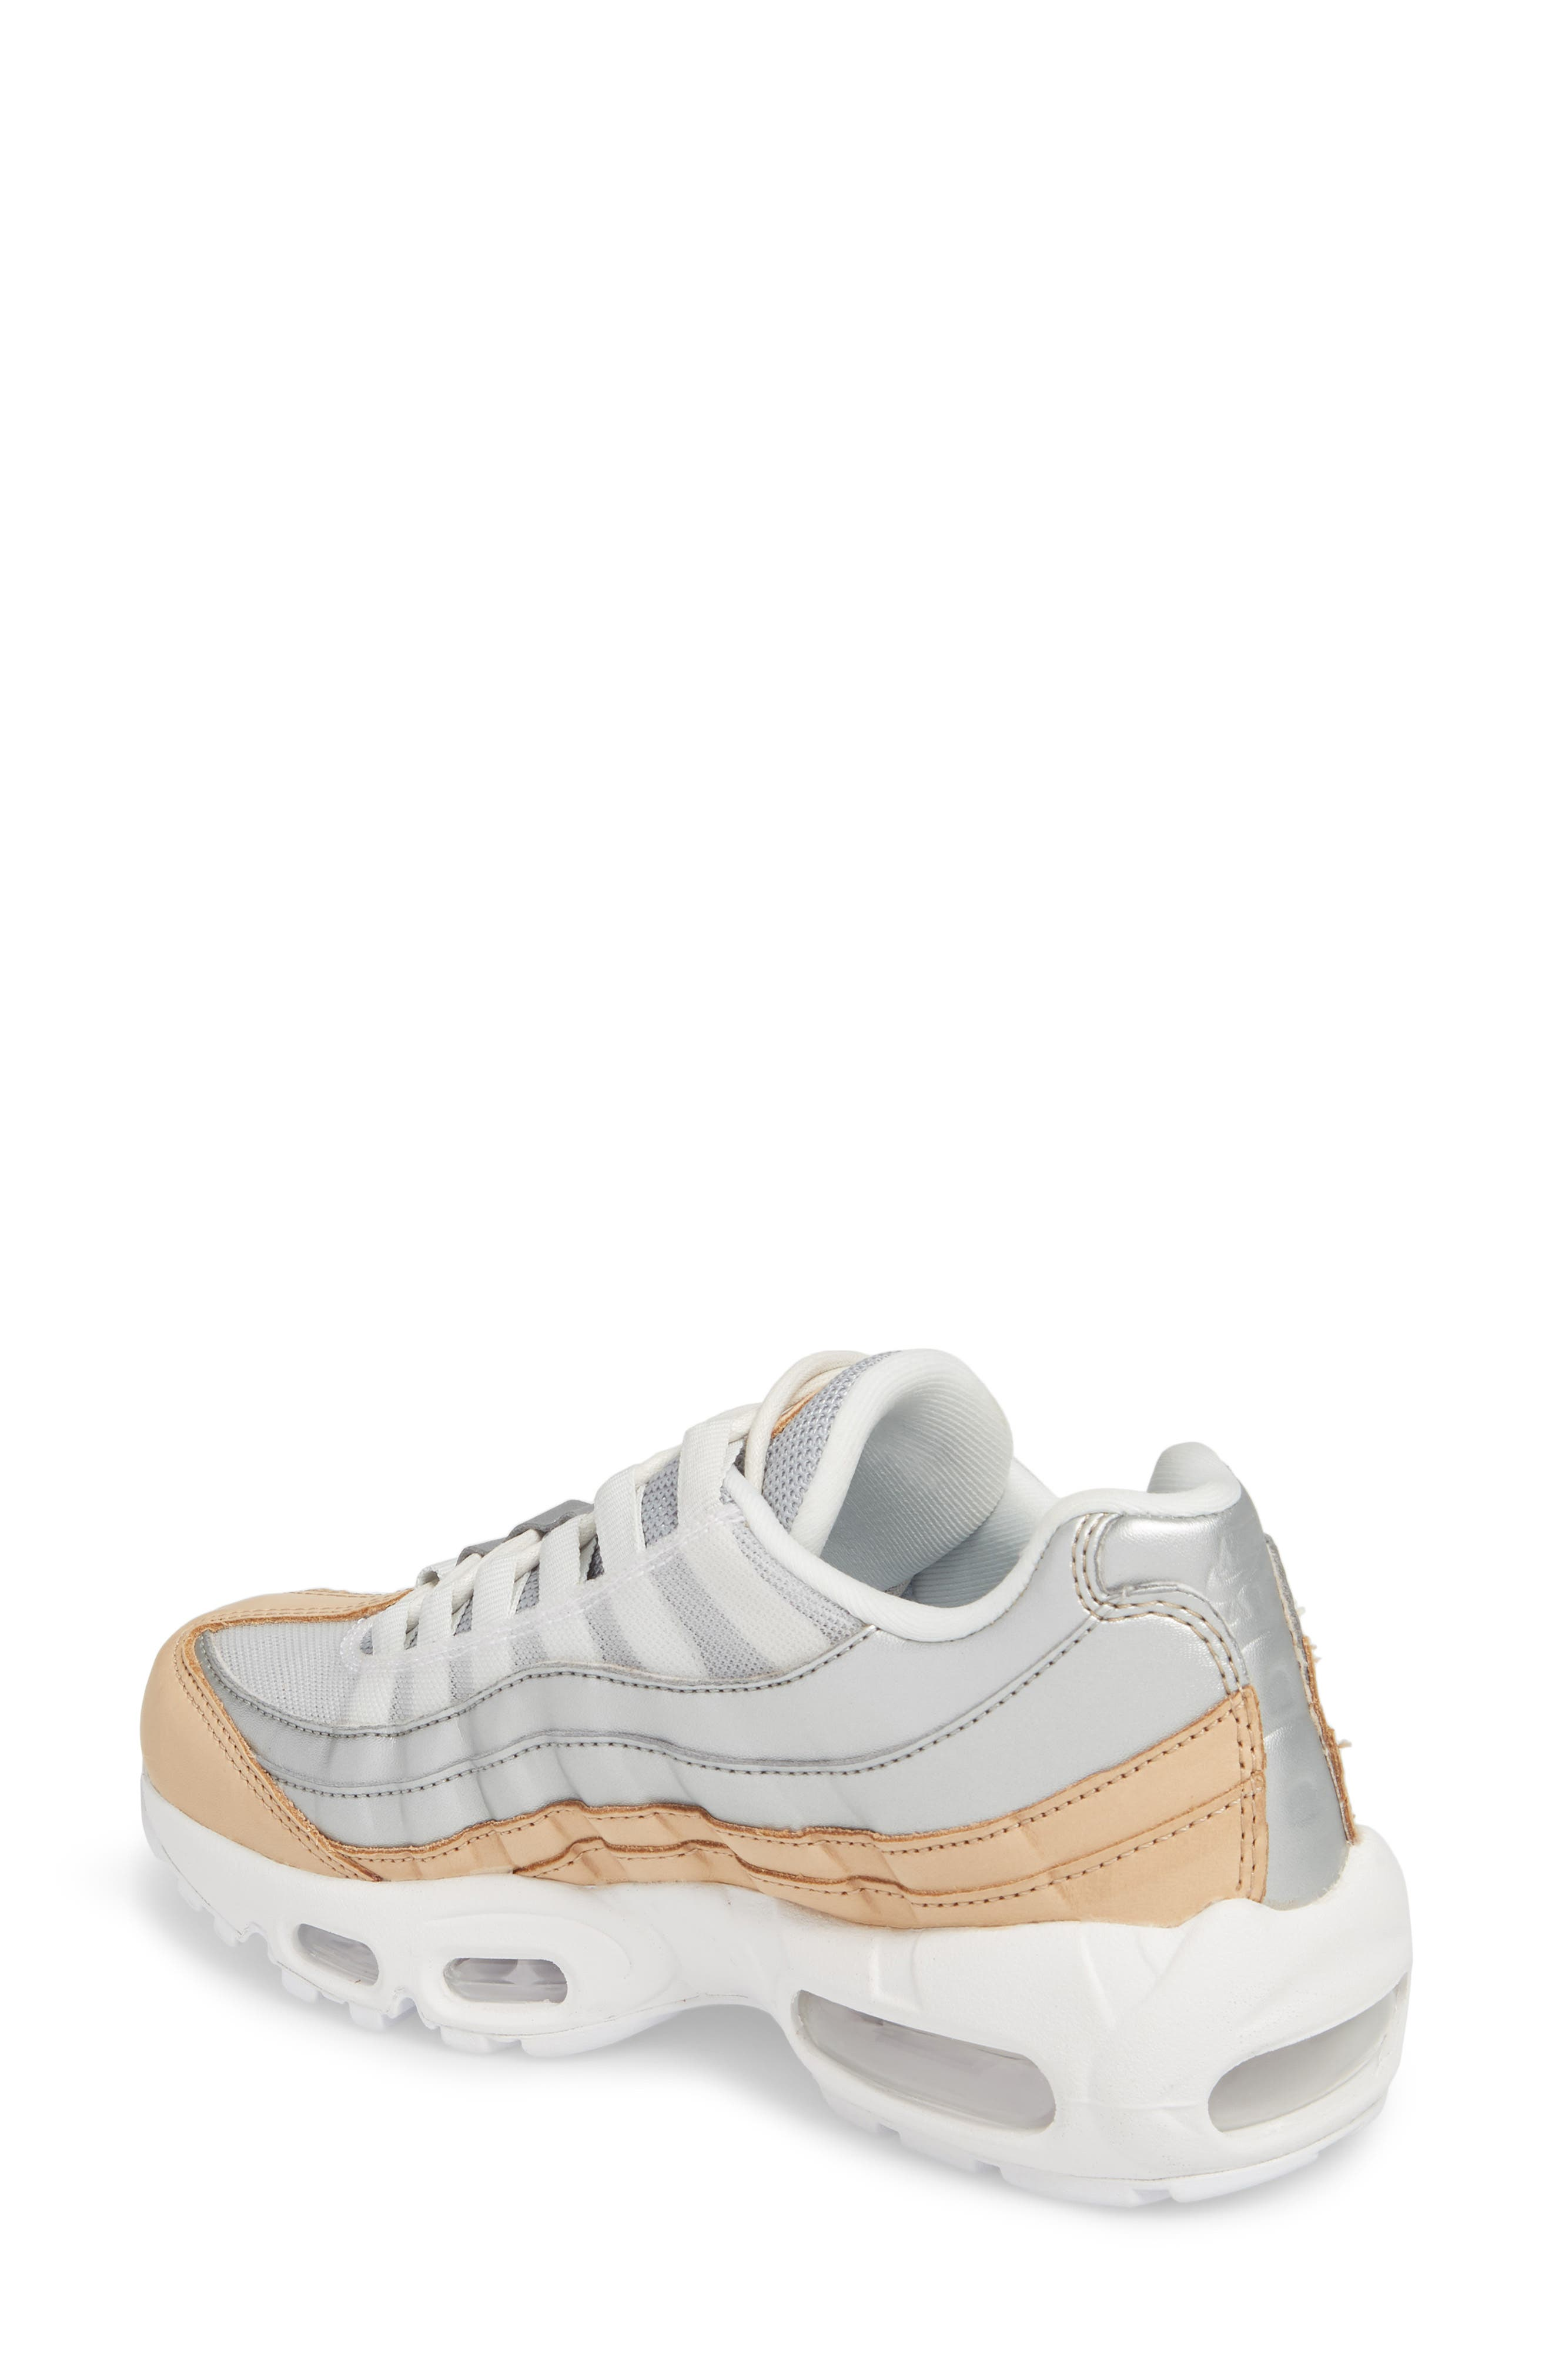 Air Max 95 Special Edition Running Shoe,                             Alternate thumbnail 2, color,                             PLATINUM/ SILVER/ WHITE